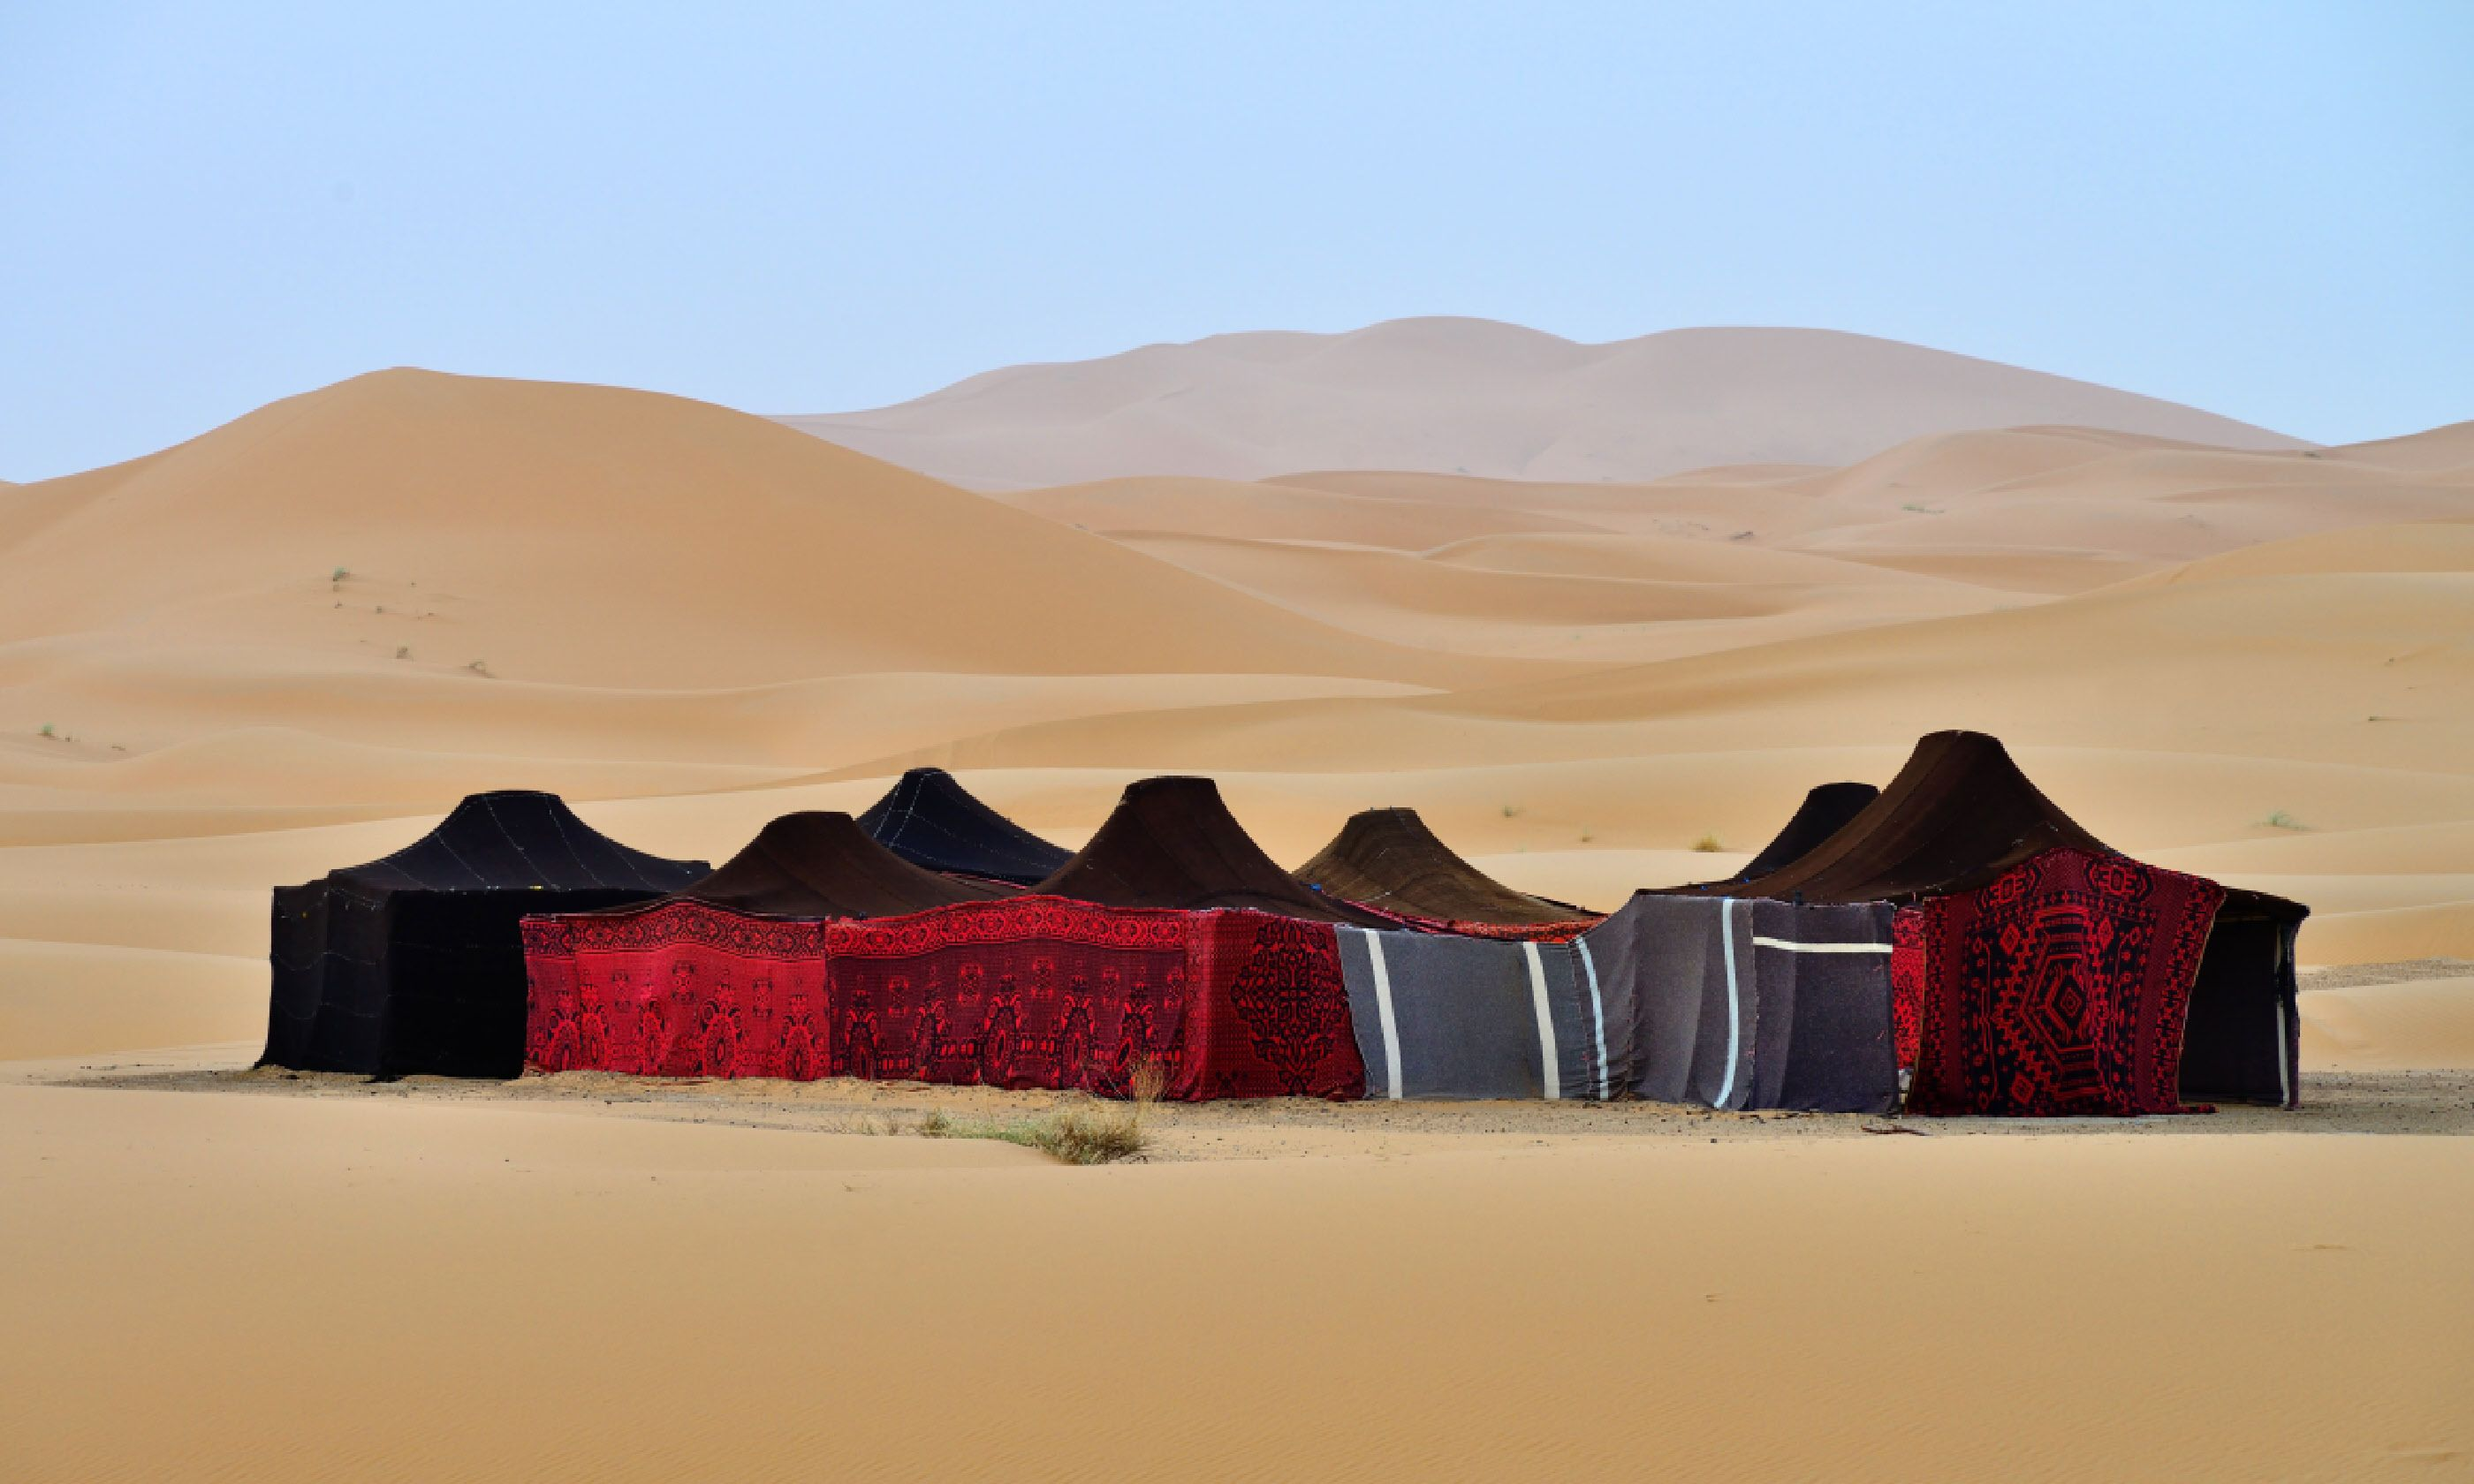 Berber tents in the Sahara, Morocco (Shutterstock)